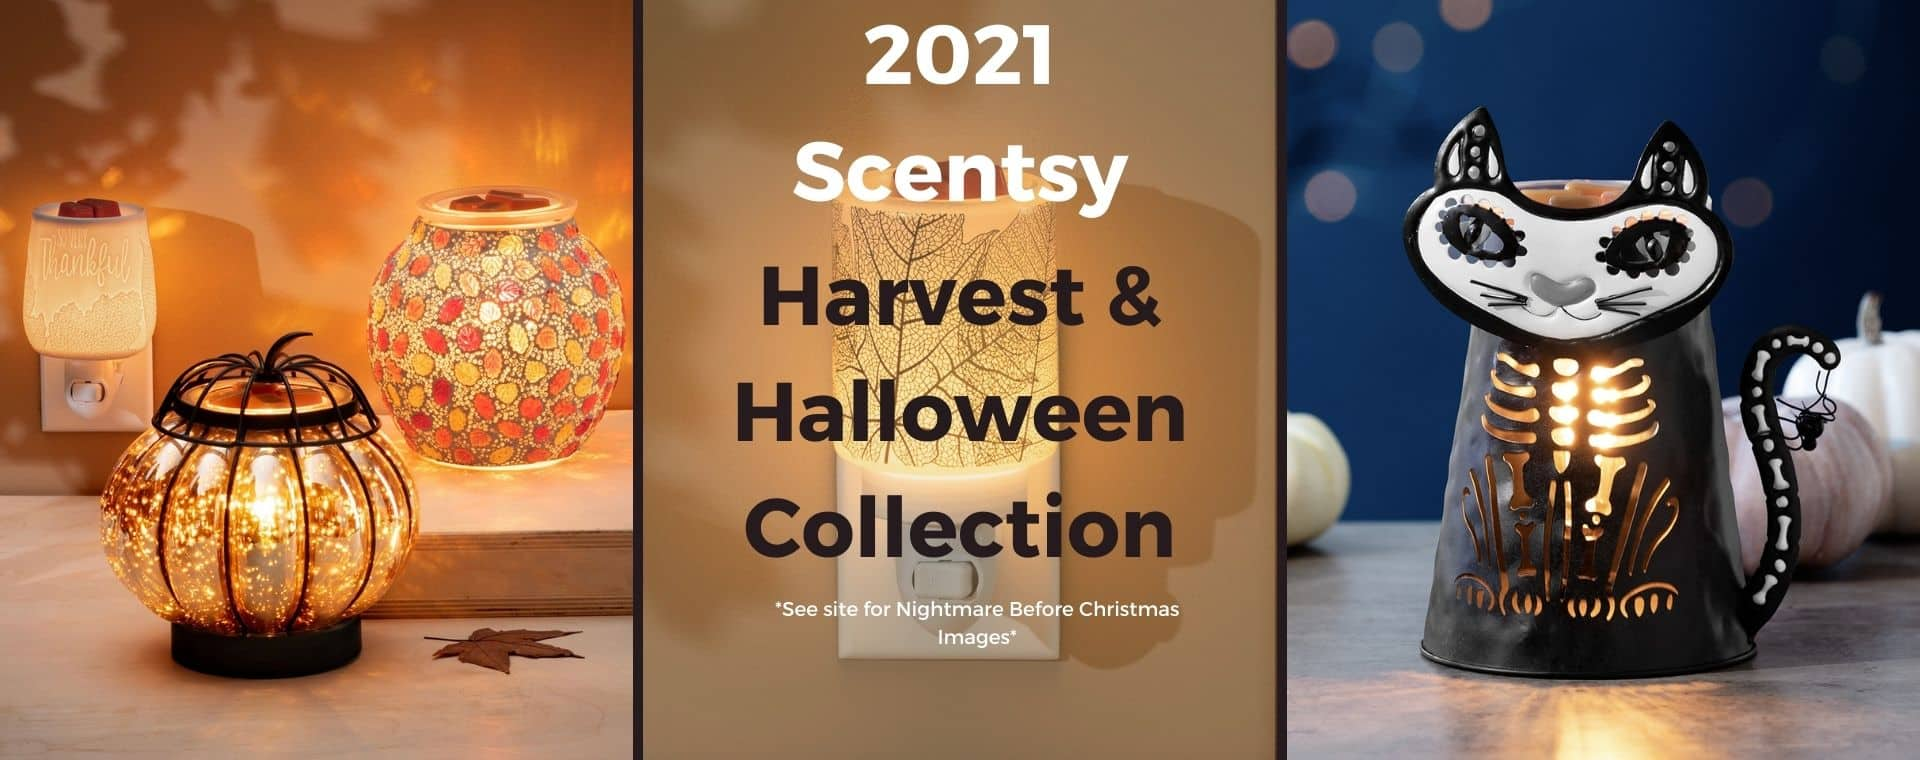 Scentsy Harvest Collection arrives 91 3 | Scentsy 2021 Harvest Halloween Collection | Shop 9/1